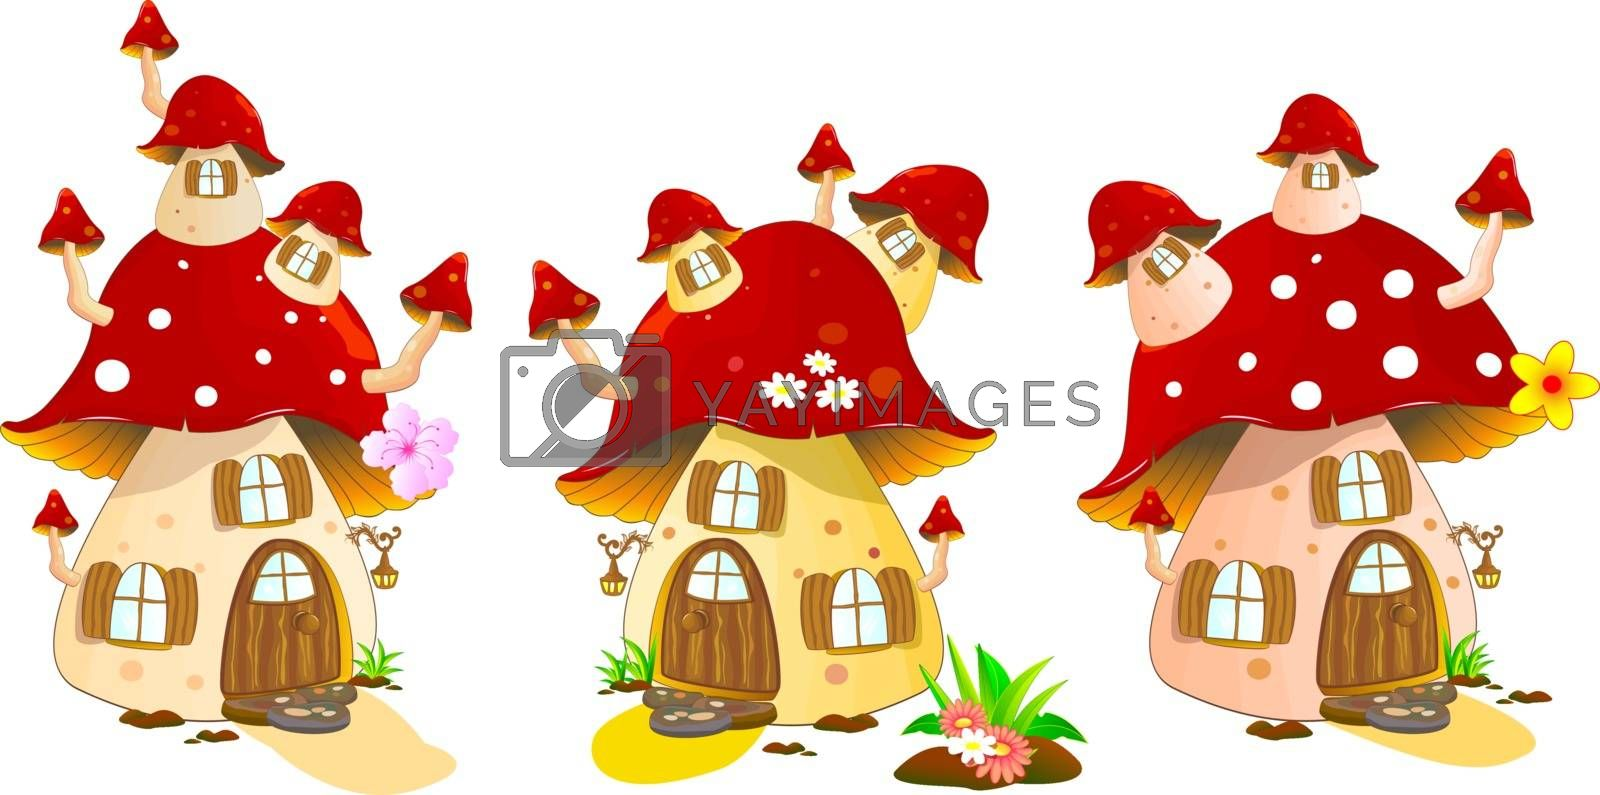 Cartoon mushrooms houses on a white background. Mushroom house red colors.